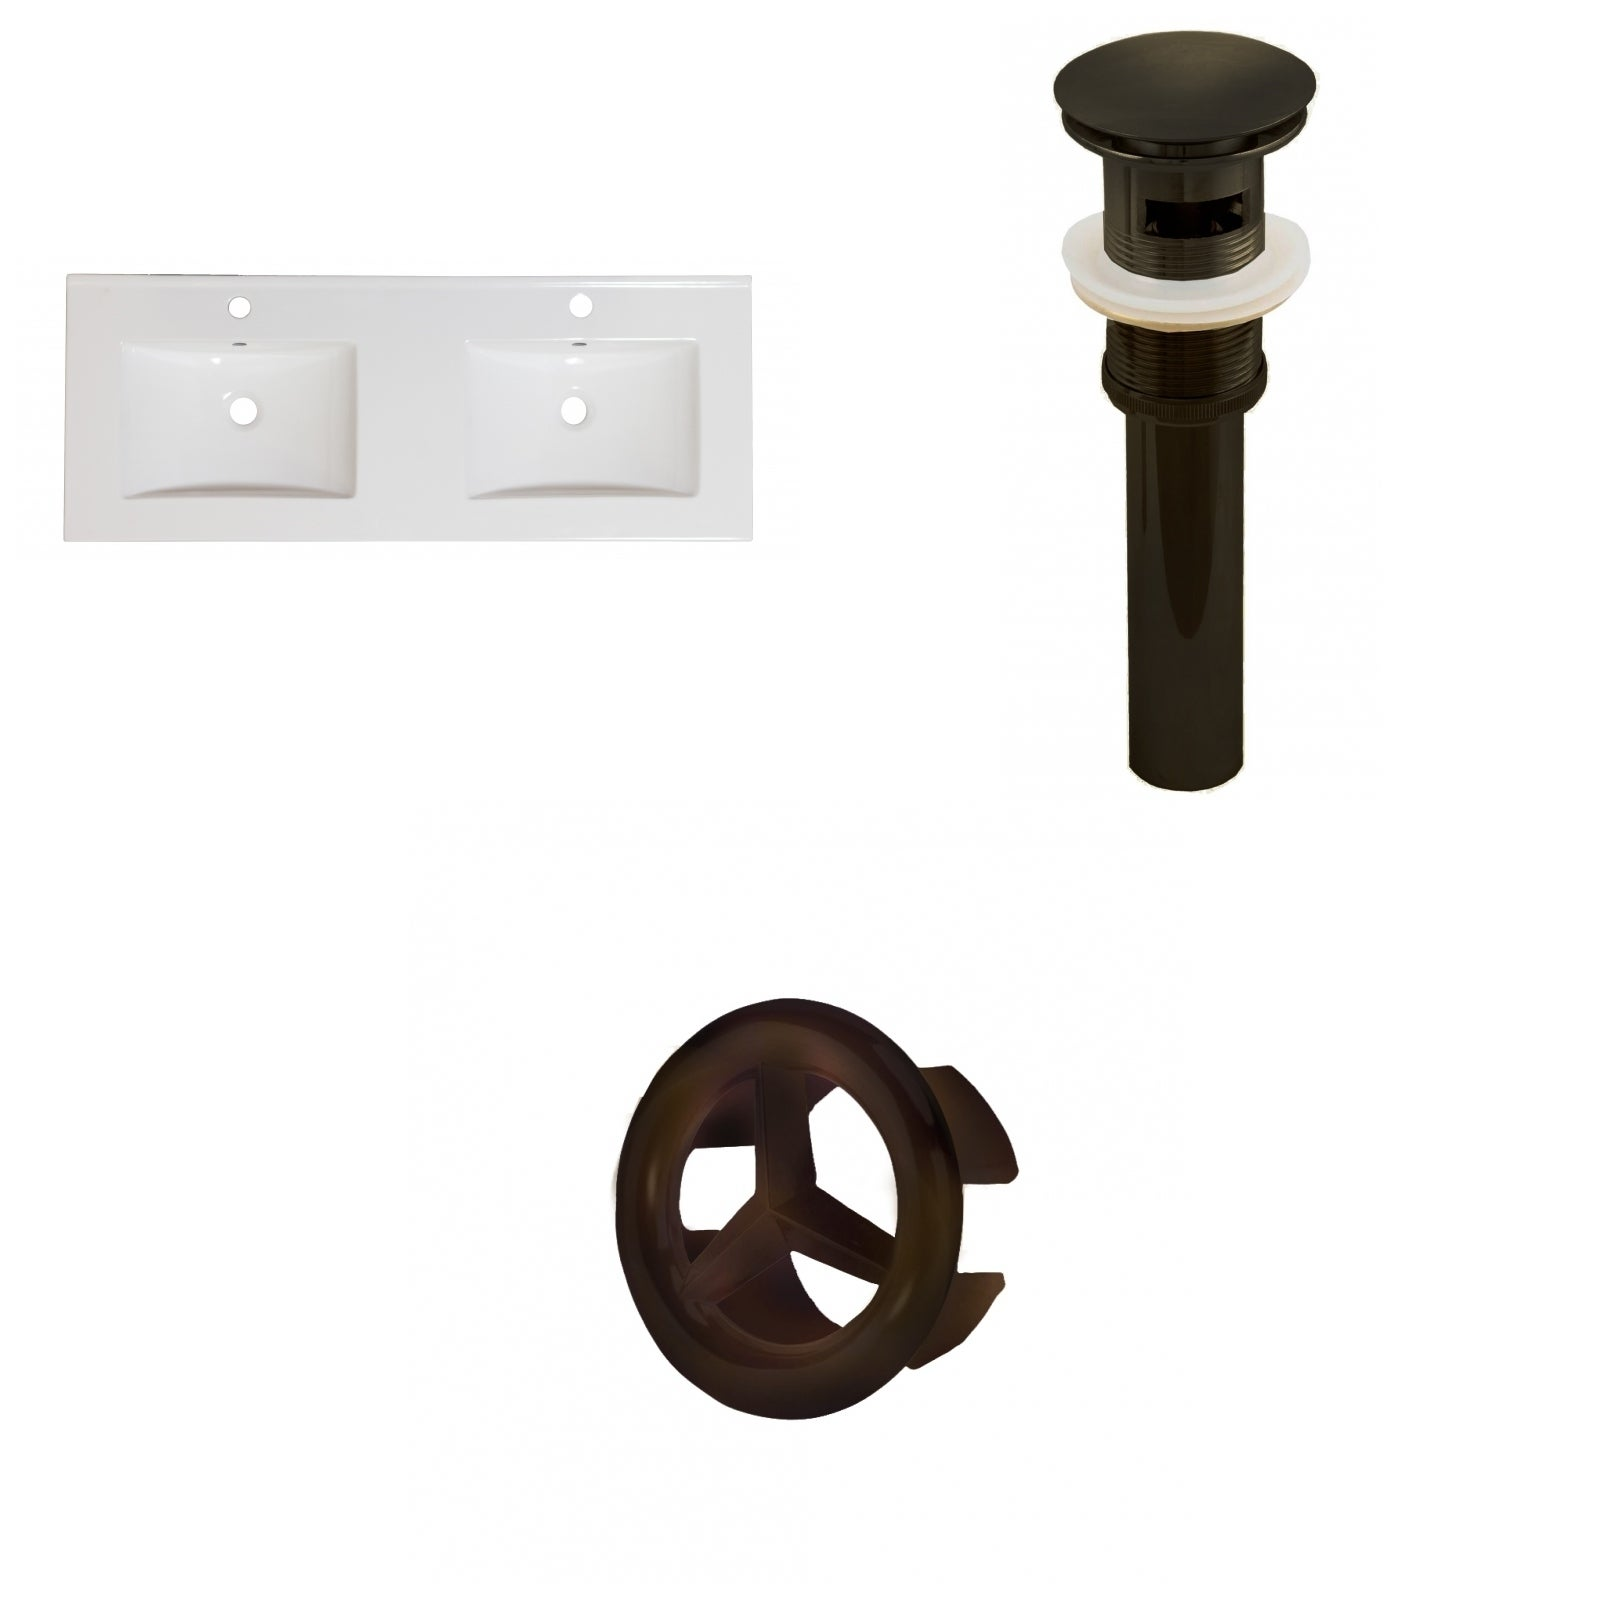 59-in. W 1 Hole Ceramic Top Set In White Color - Overflow Drain Incl.